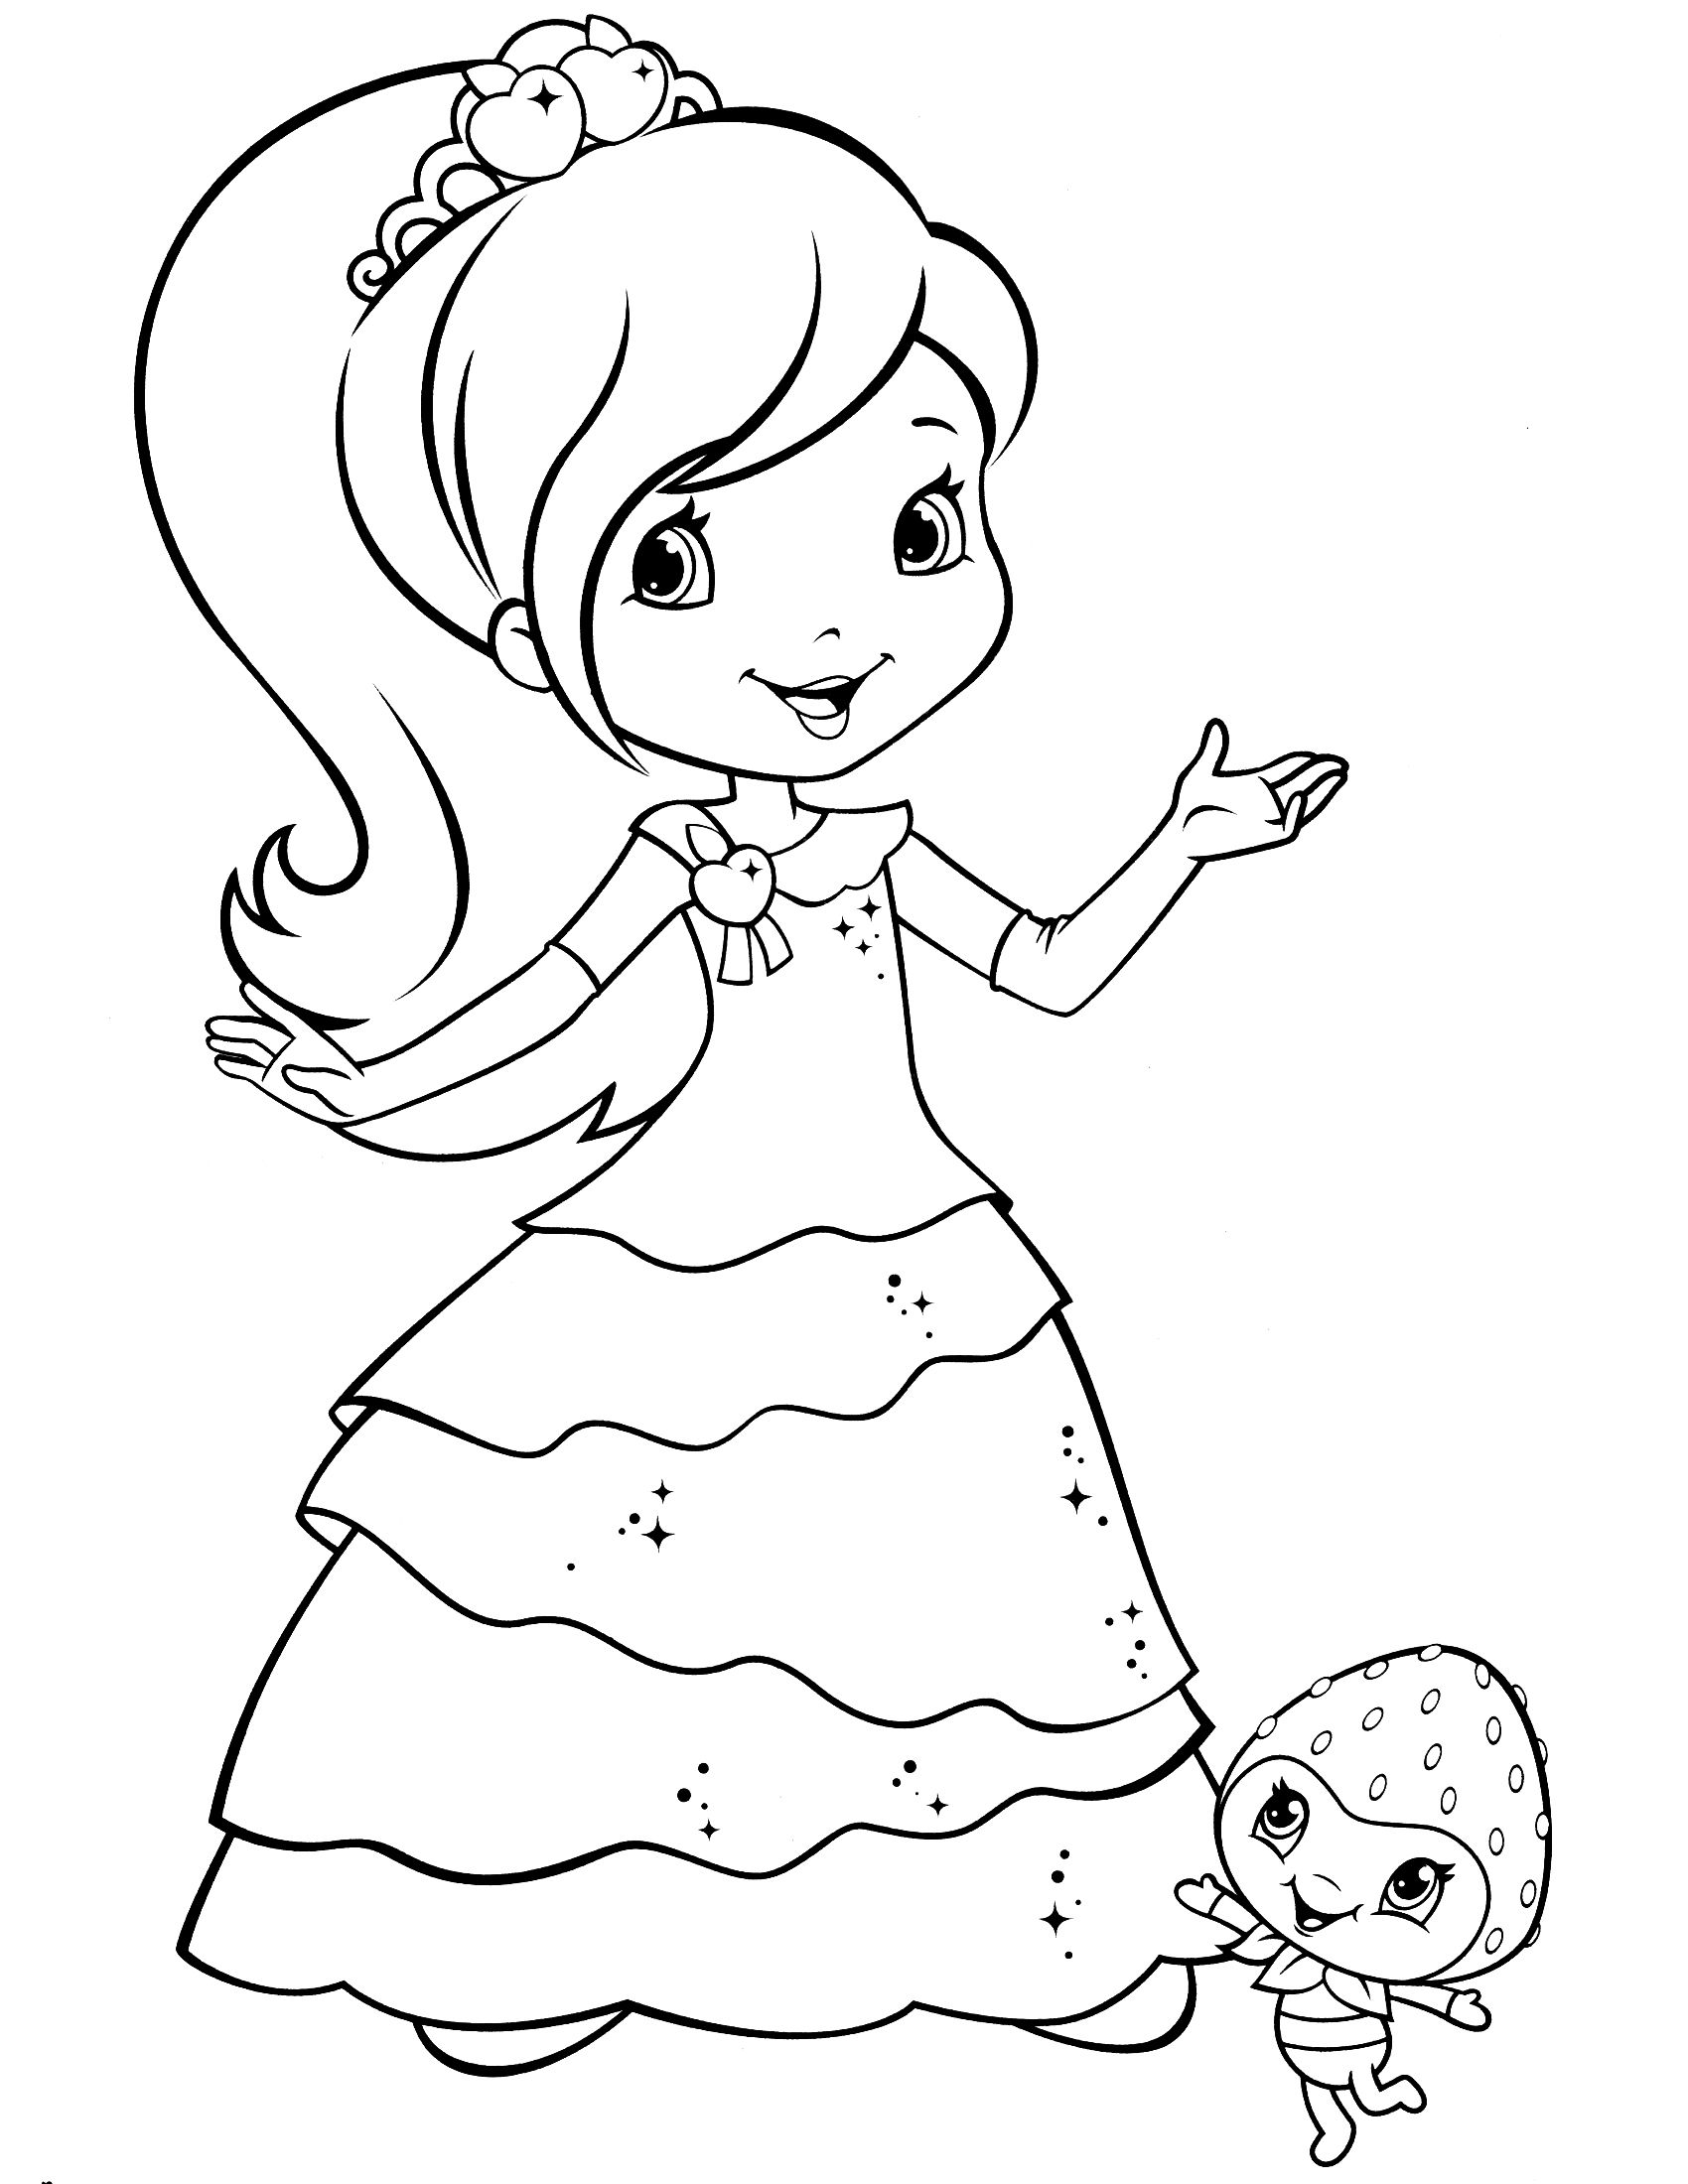 strawberry shortcake coloring page | Strawberry Shortcake Coloring ...